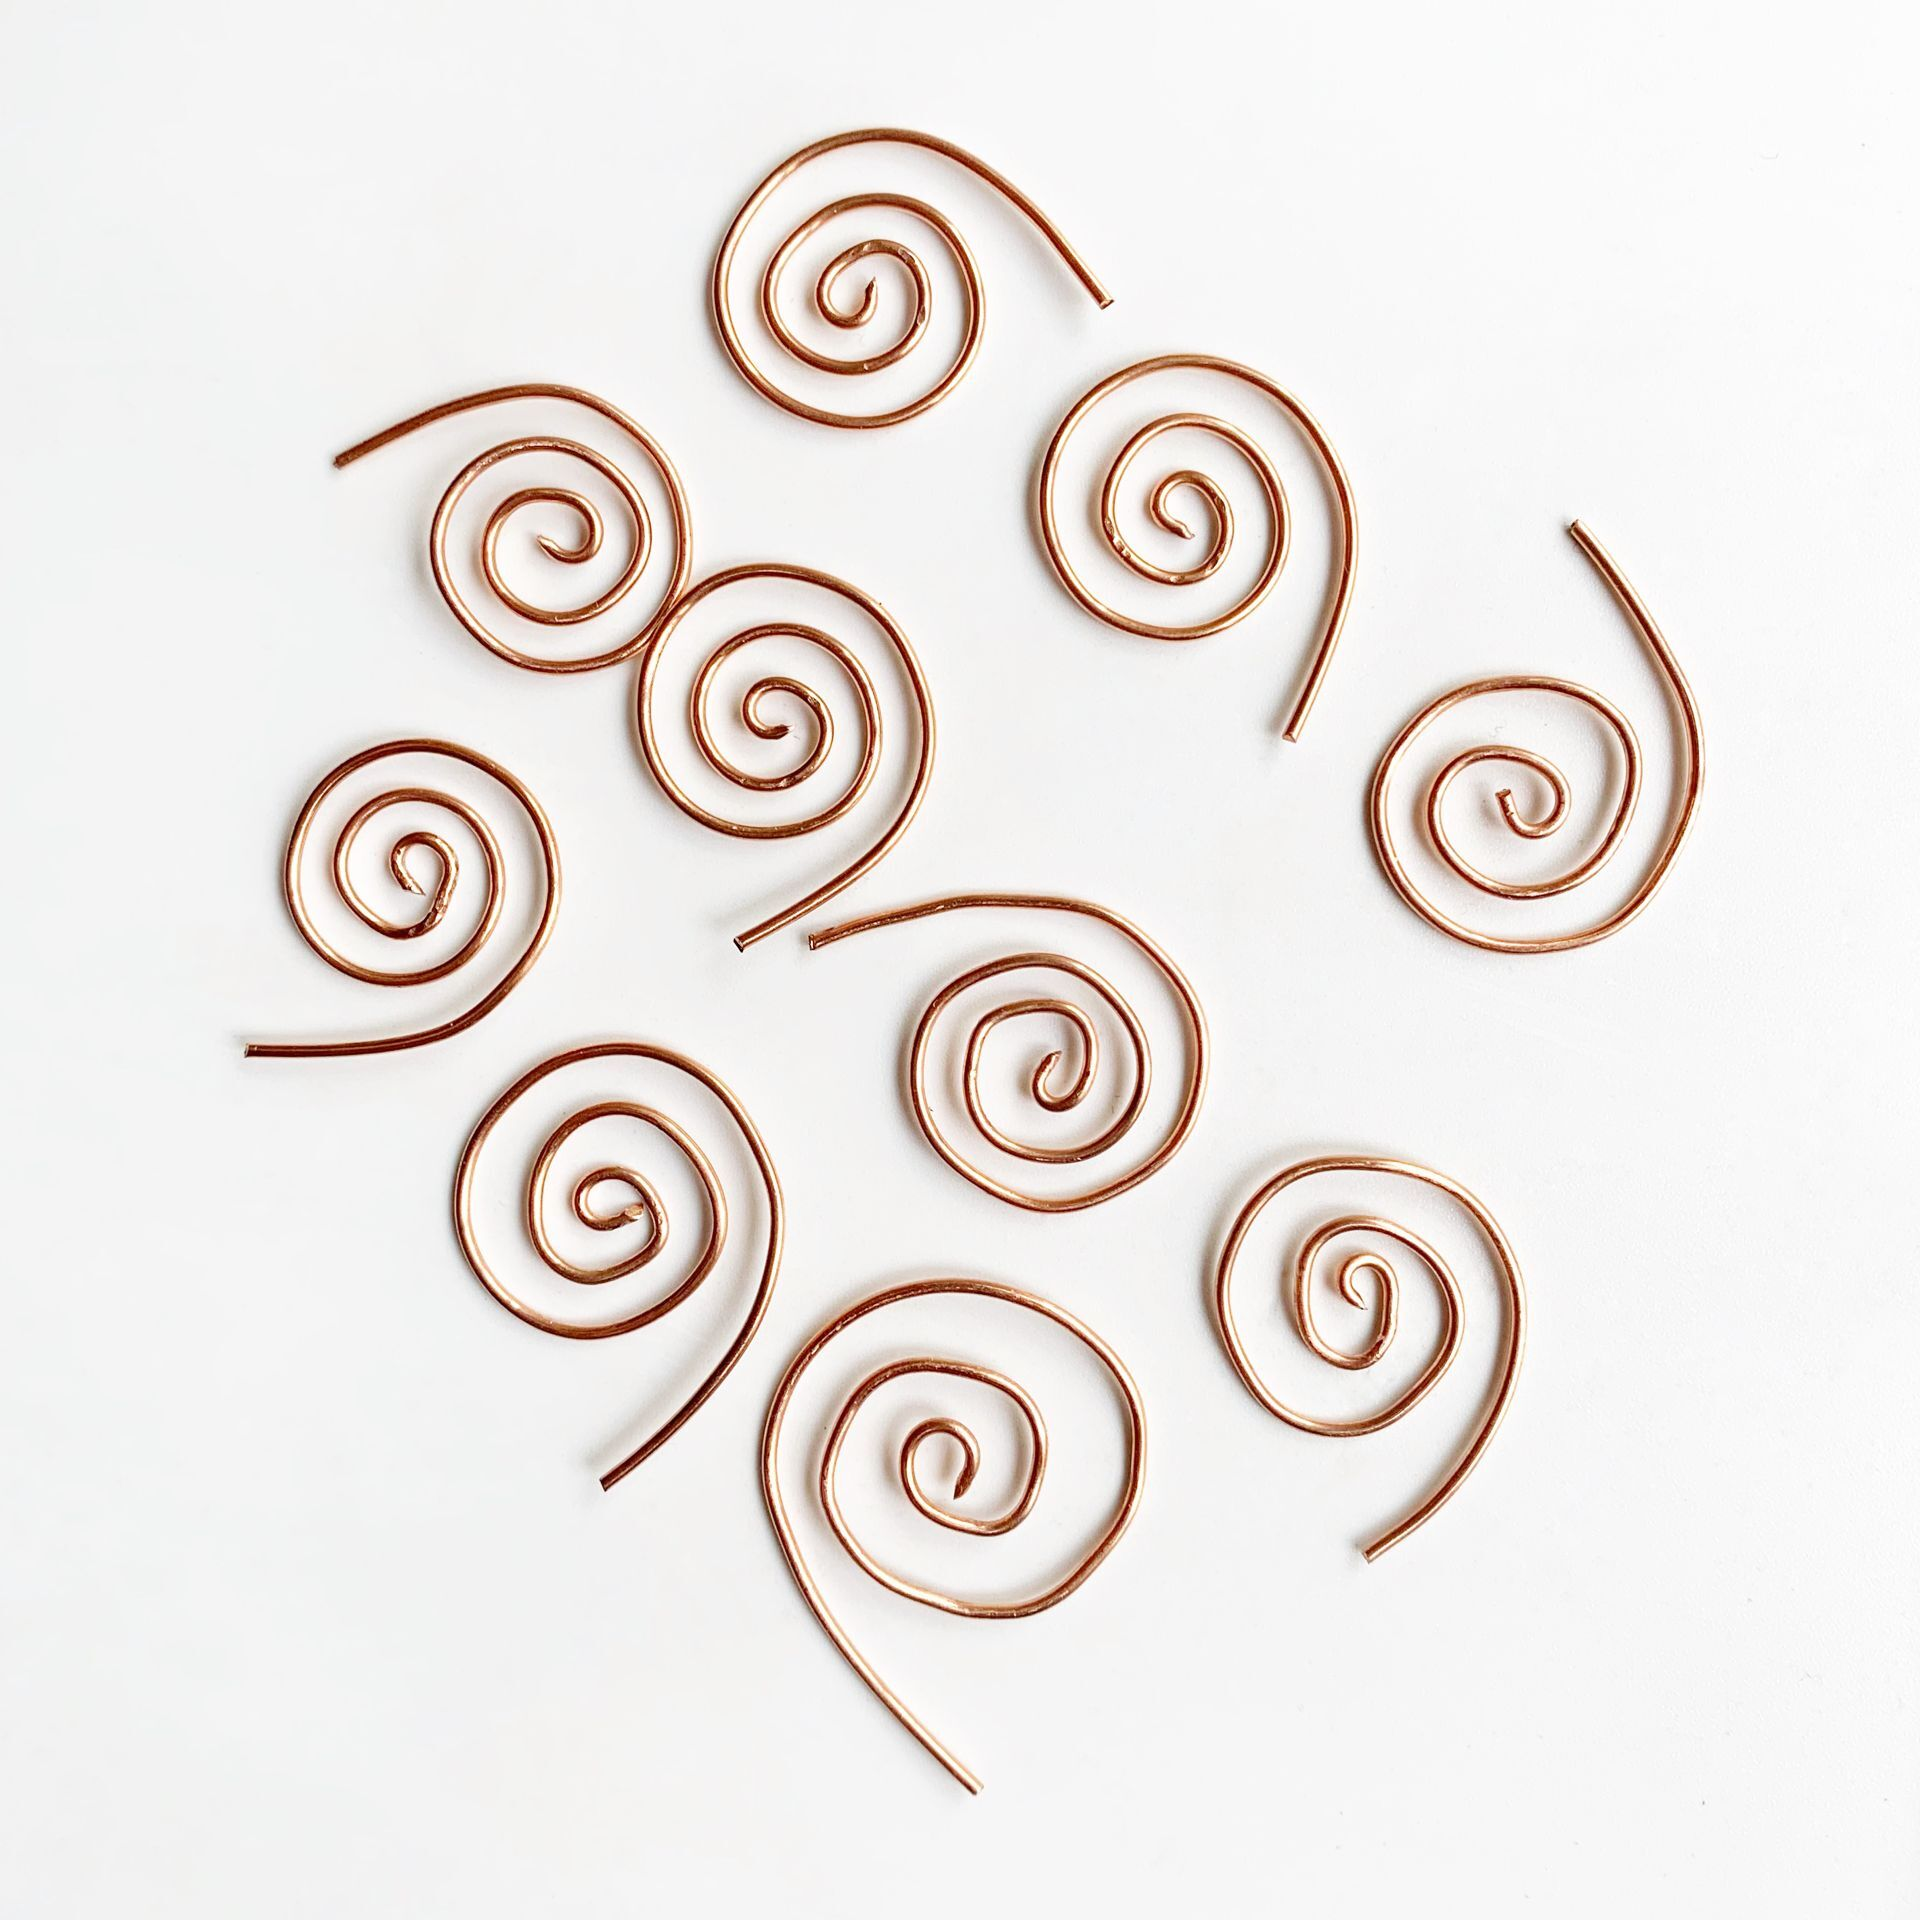 10pcs Brass Copper Wire Coil Spiral Snail Coil For Orgone Energy Projects DIY Accessories Home Decoration Accessories Modern